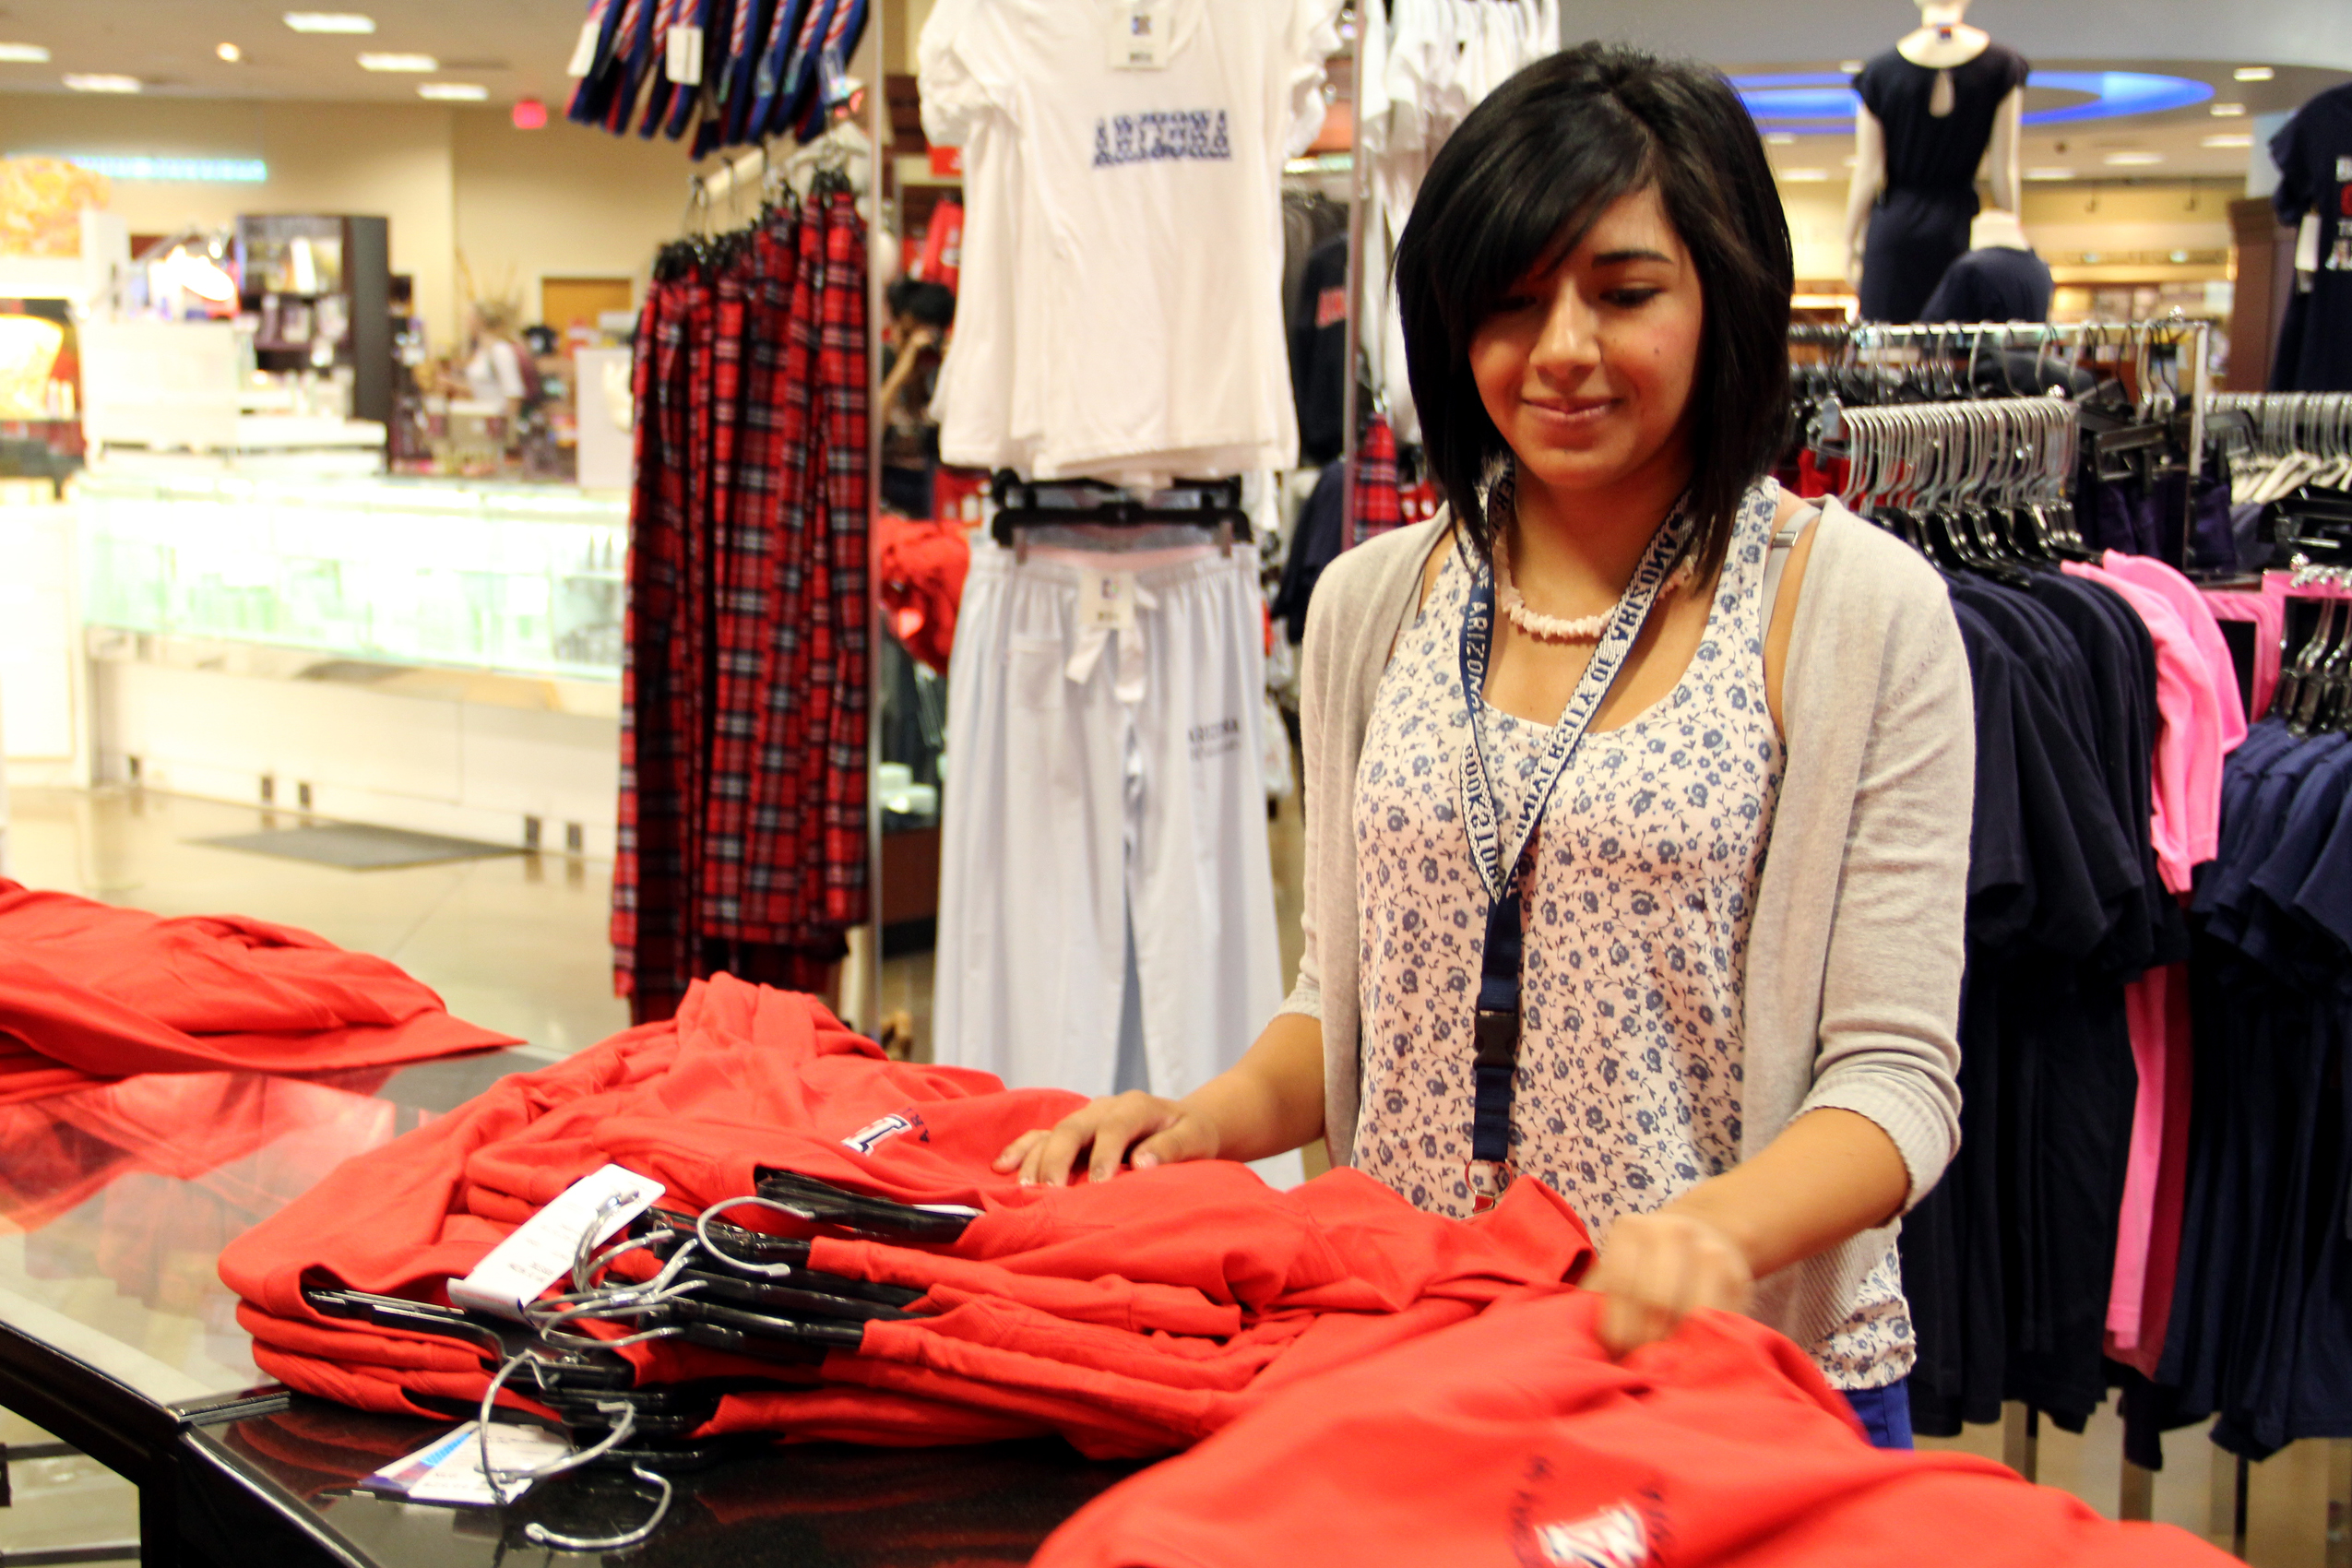 A Hispanic woman folding clothes in a store.